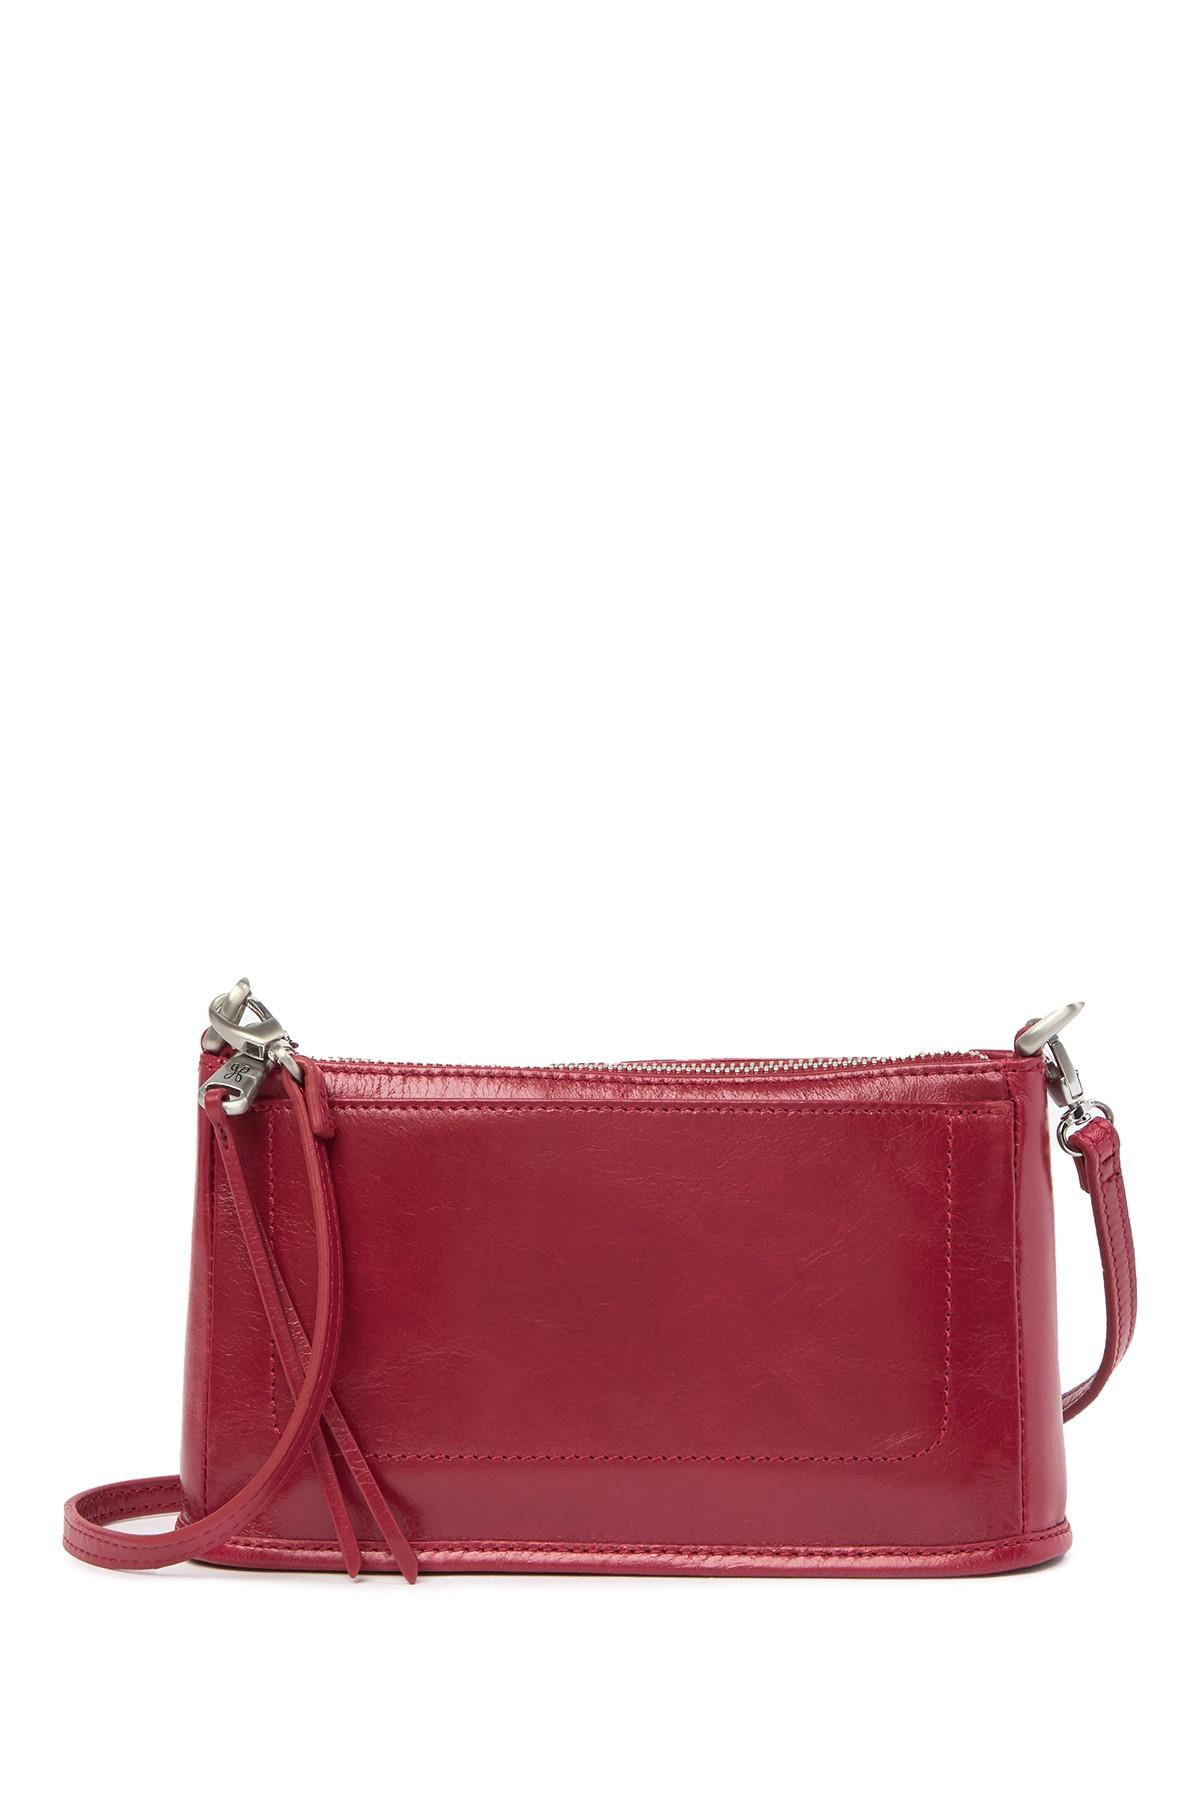 a2890618f655 Lyst - Hobo Cadence Leather Convertible Crossbody Bag in Red